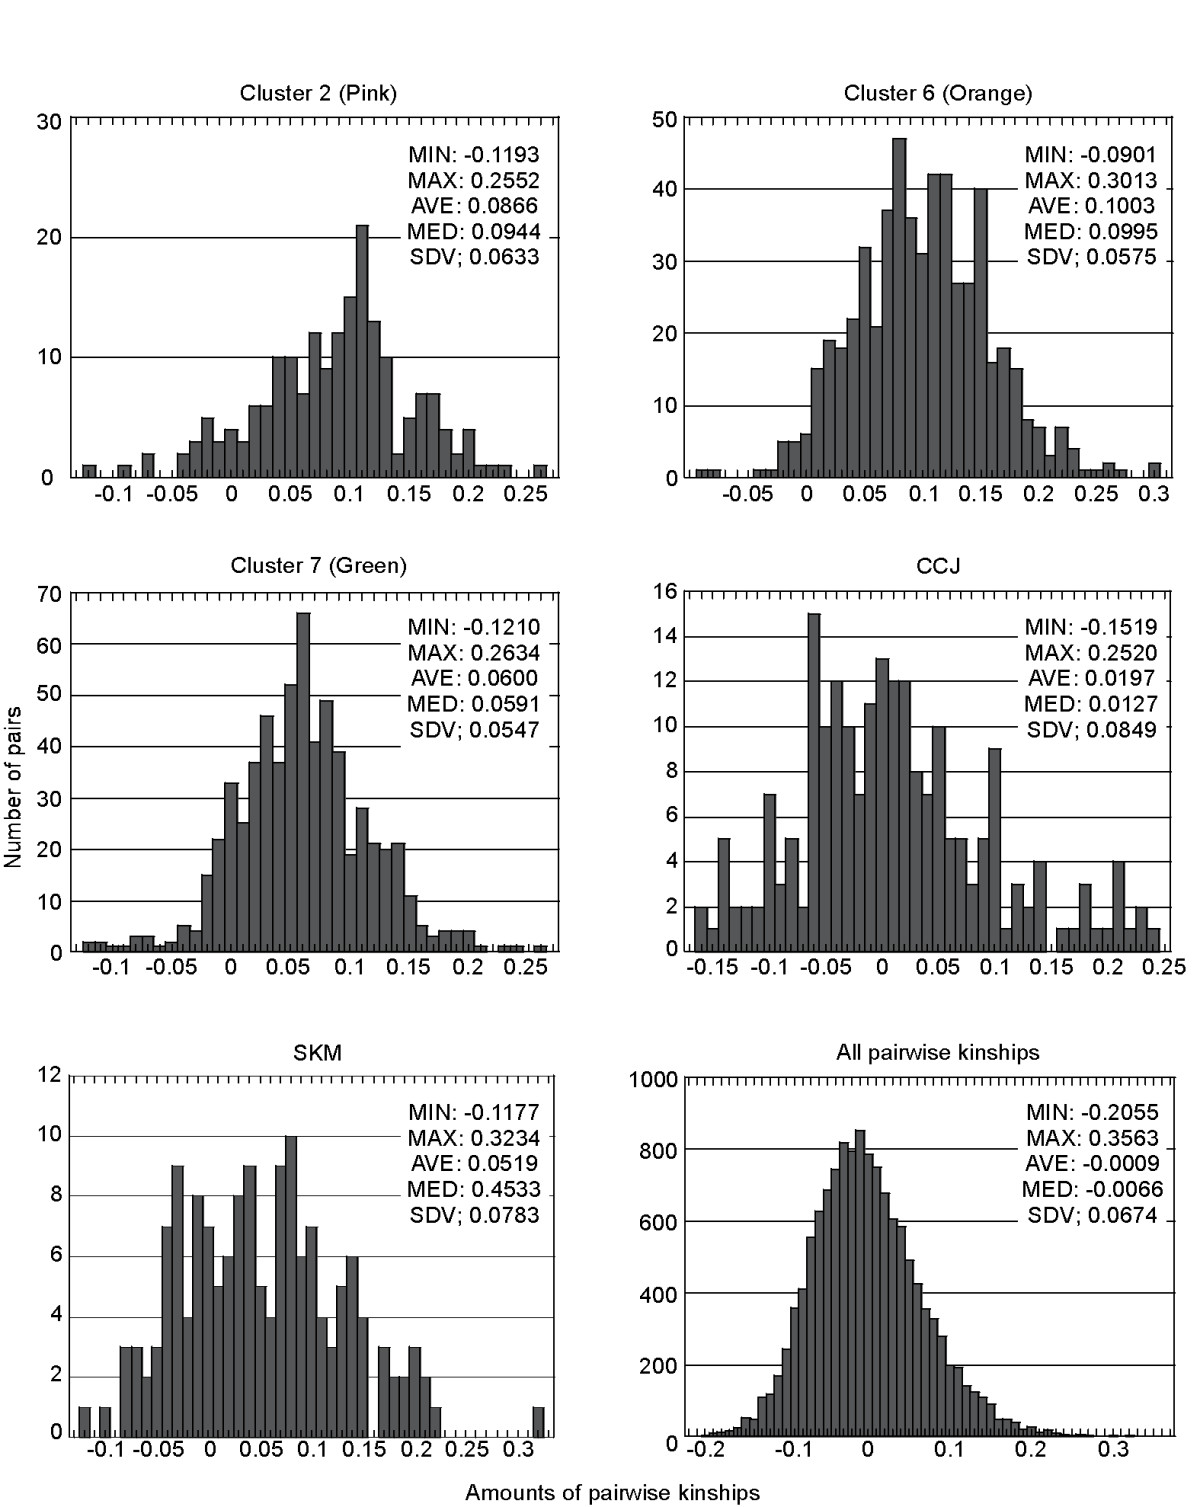 http://static-content.springer.com/image/art%3A10.1186%2F1472-6785-6-14/MediaObjects/12898_2006_Article_67_Fig5_HTML.jpg